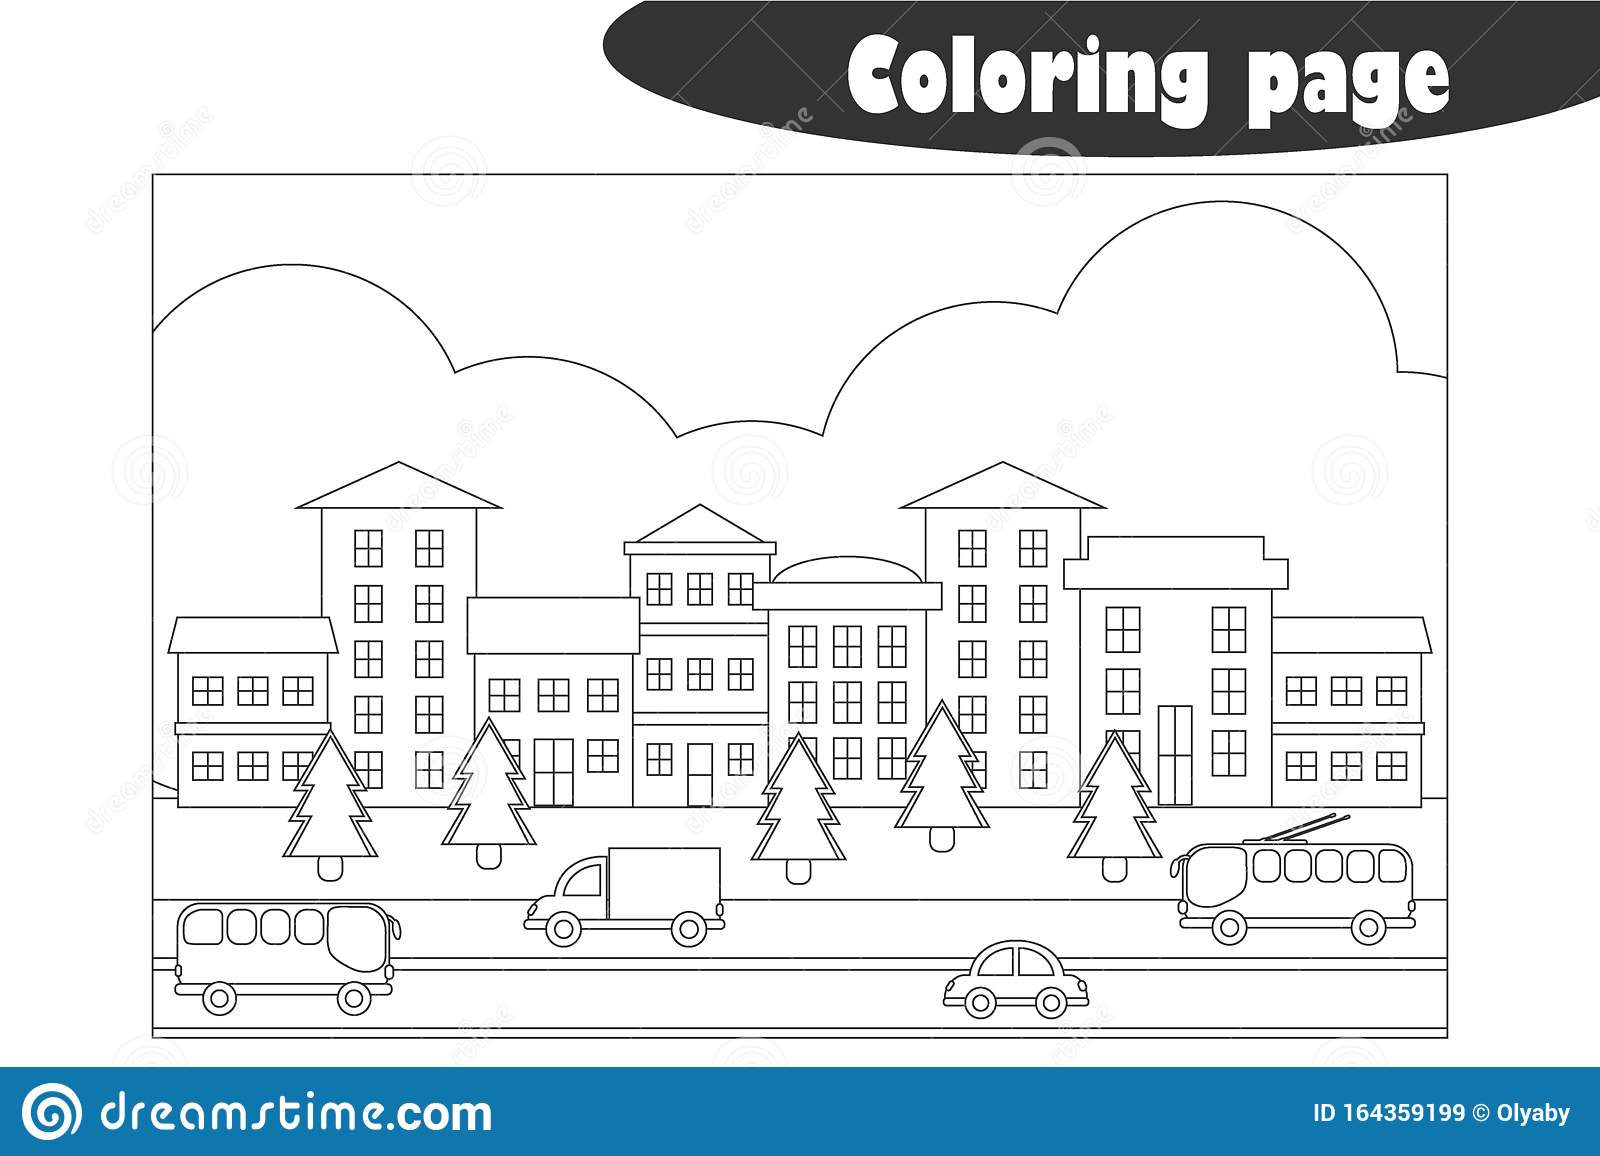 Snowy Weather Coloring Pages - Ultra Coloring Pages | 1156x1600